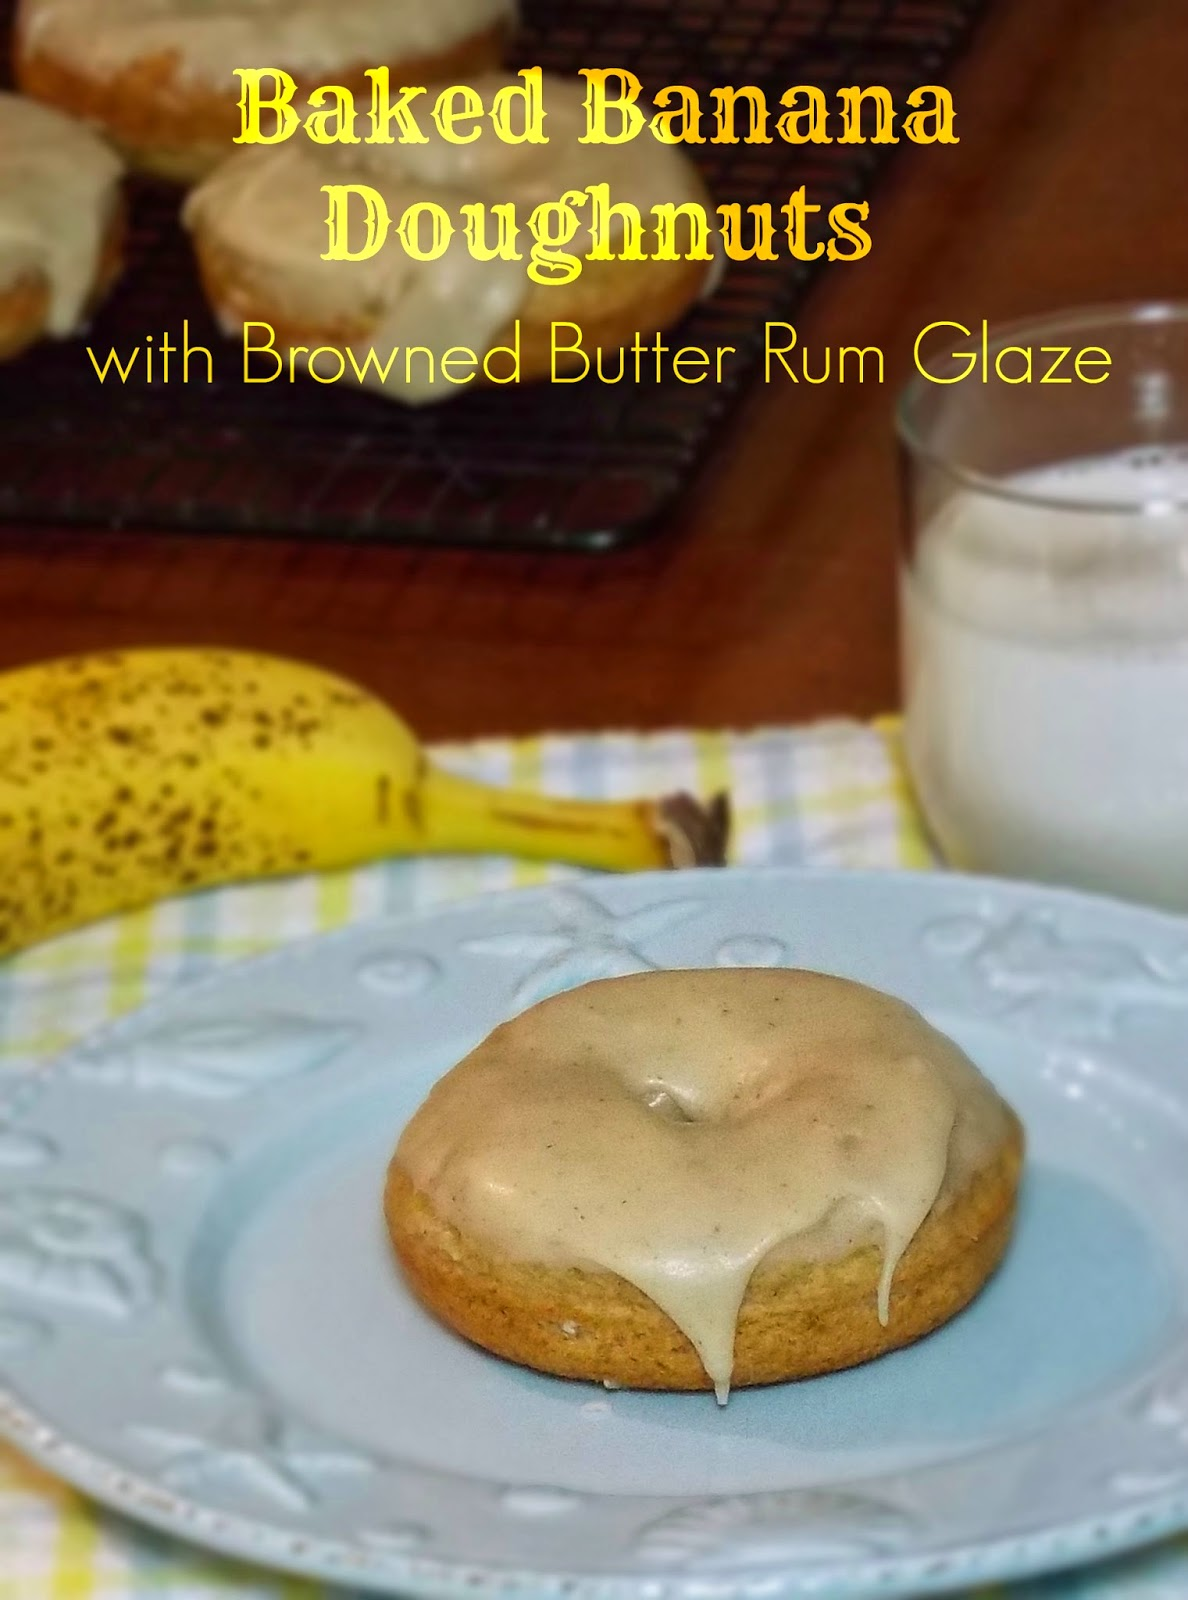 Baked Banana Doughnuts with Browned Butter Rum Glaze